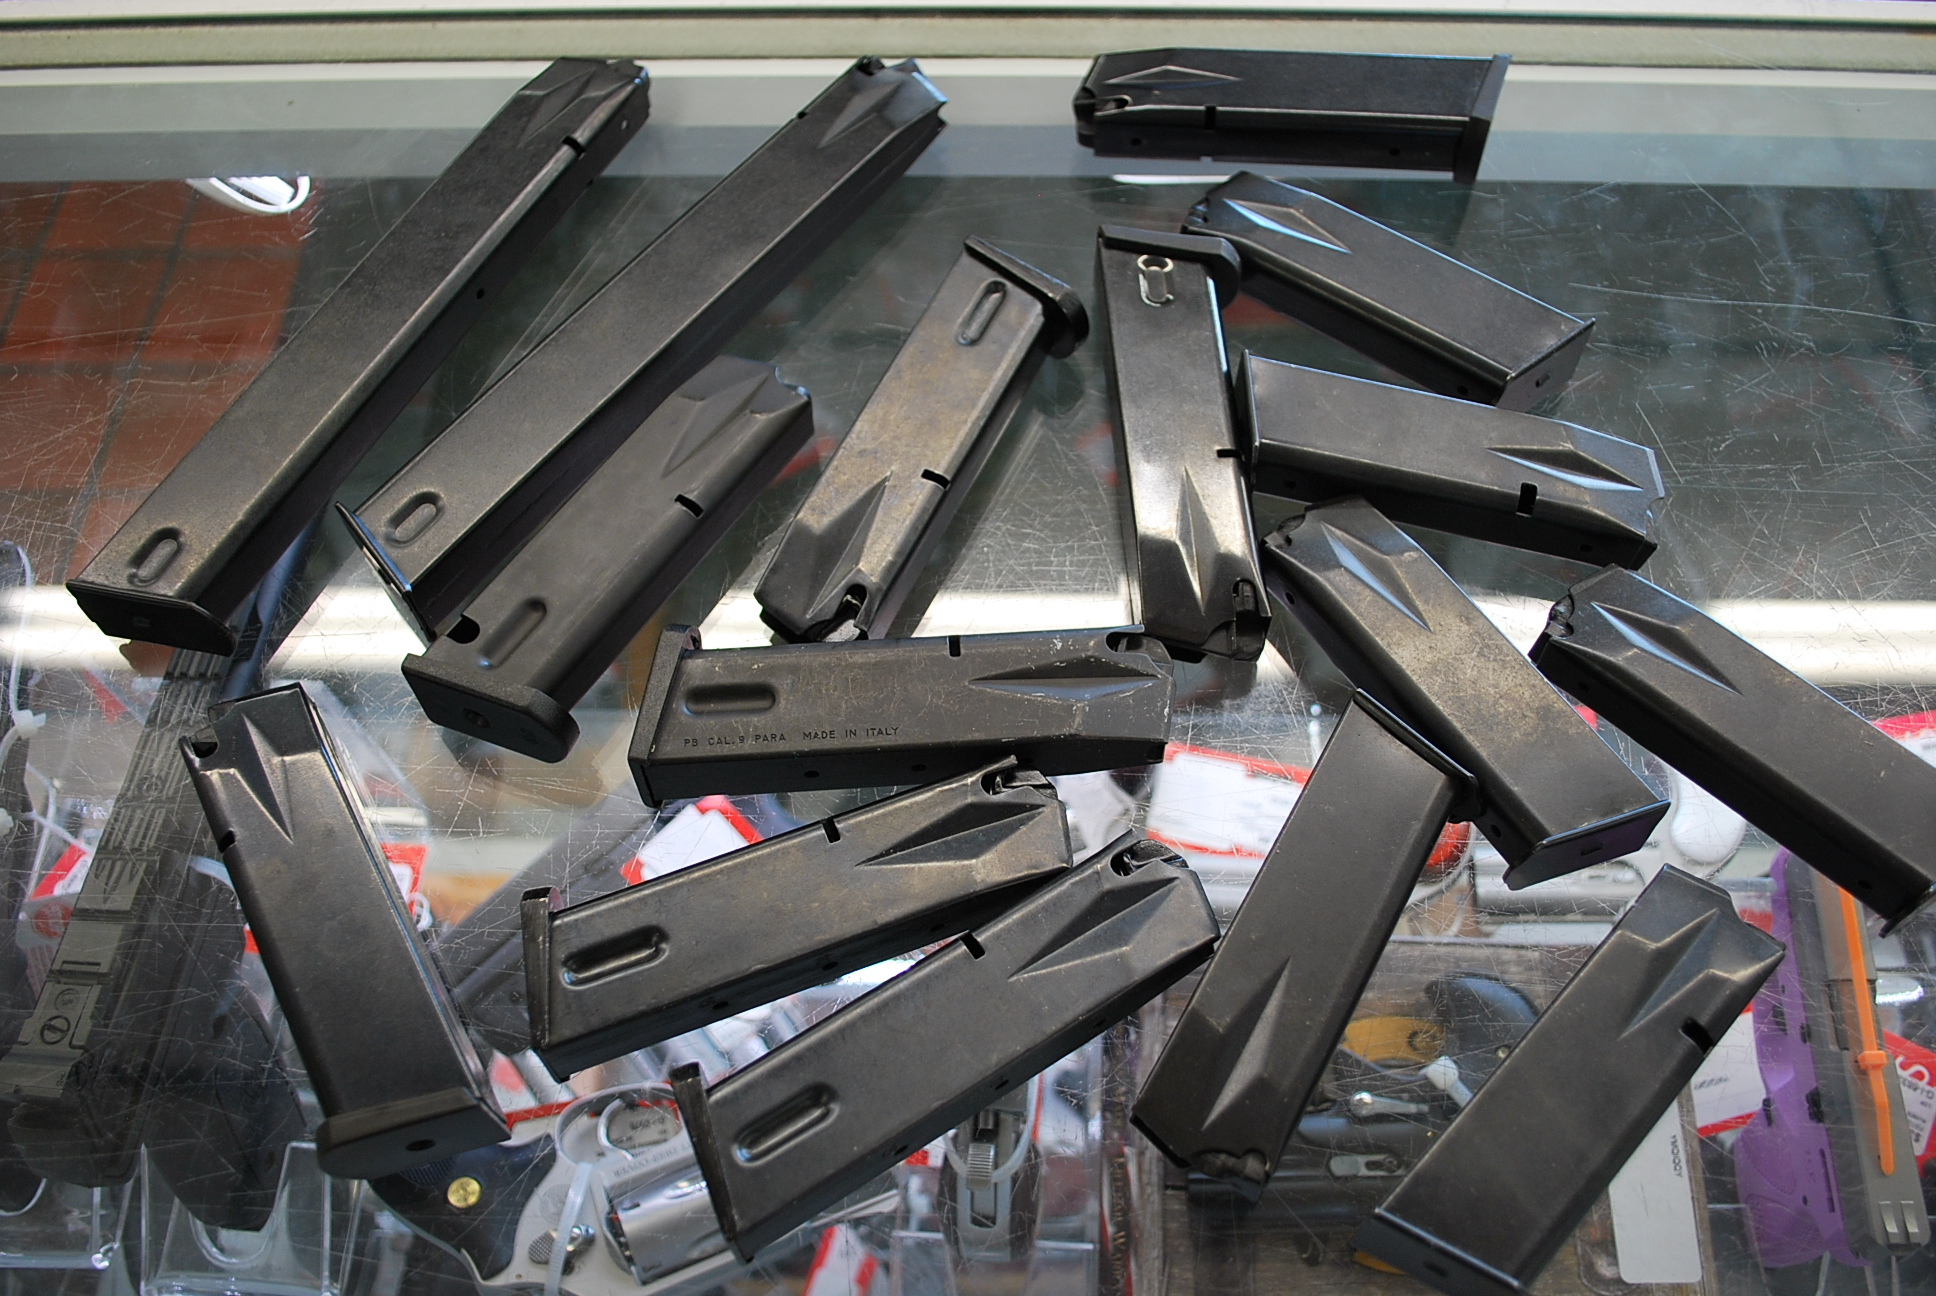 WE HAVE BERETTA MAGS!